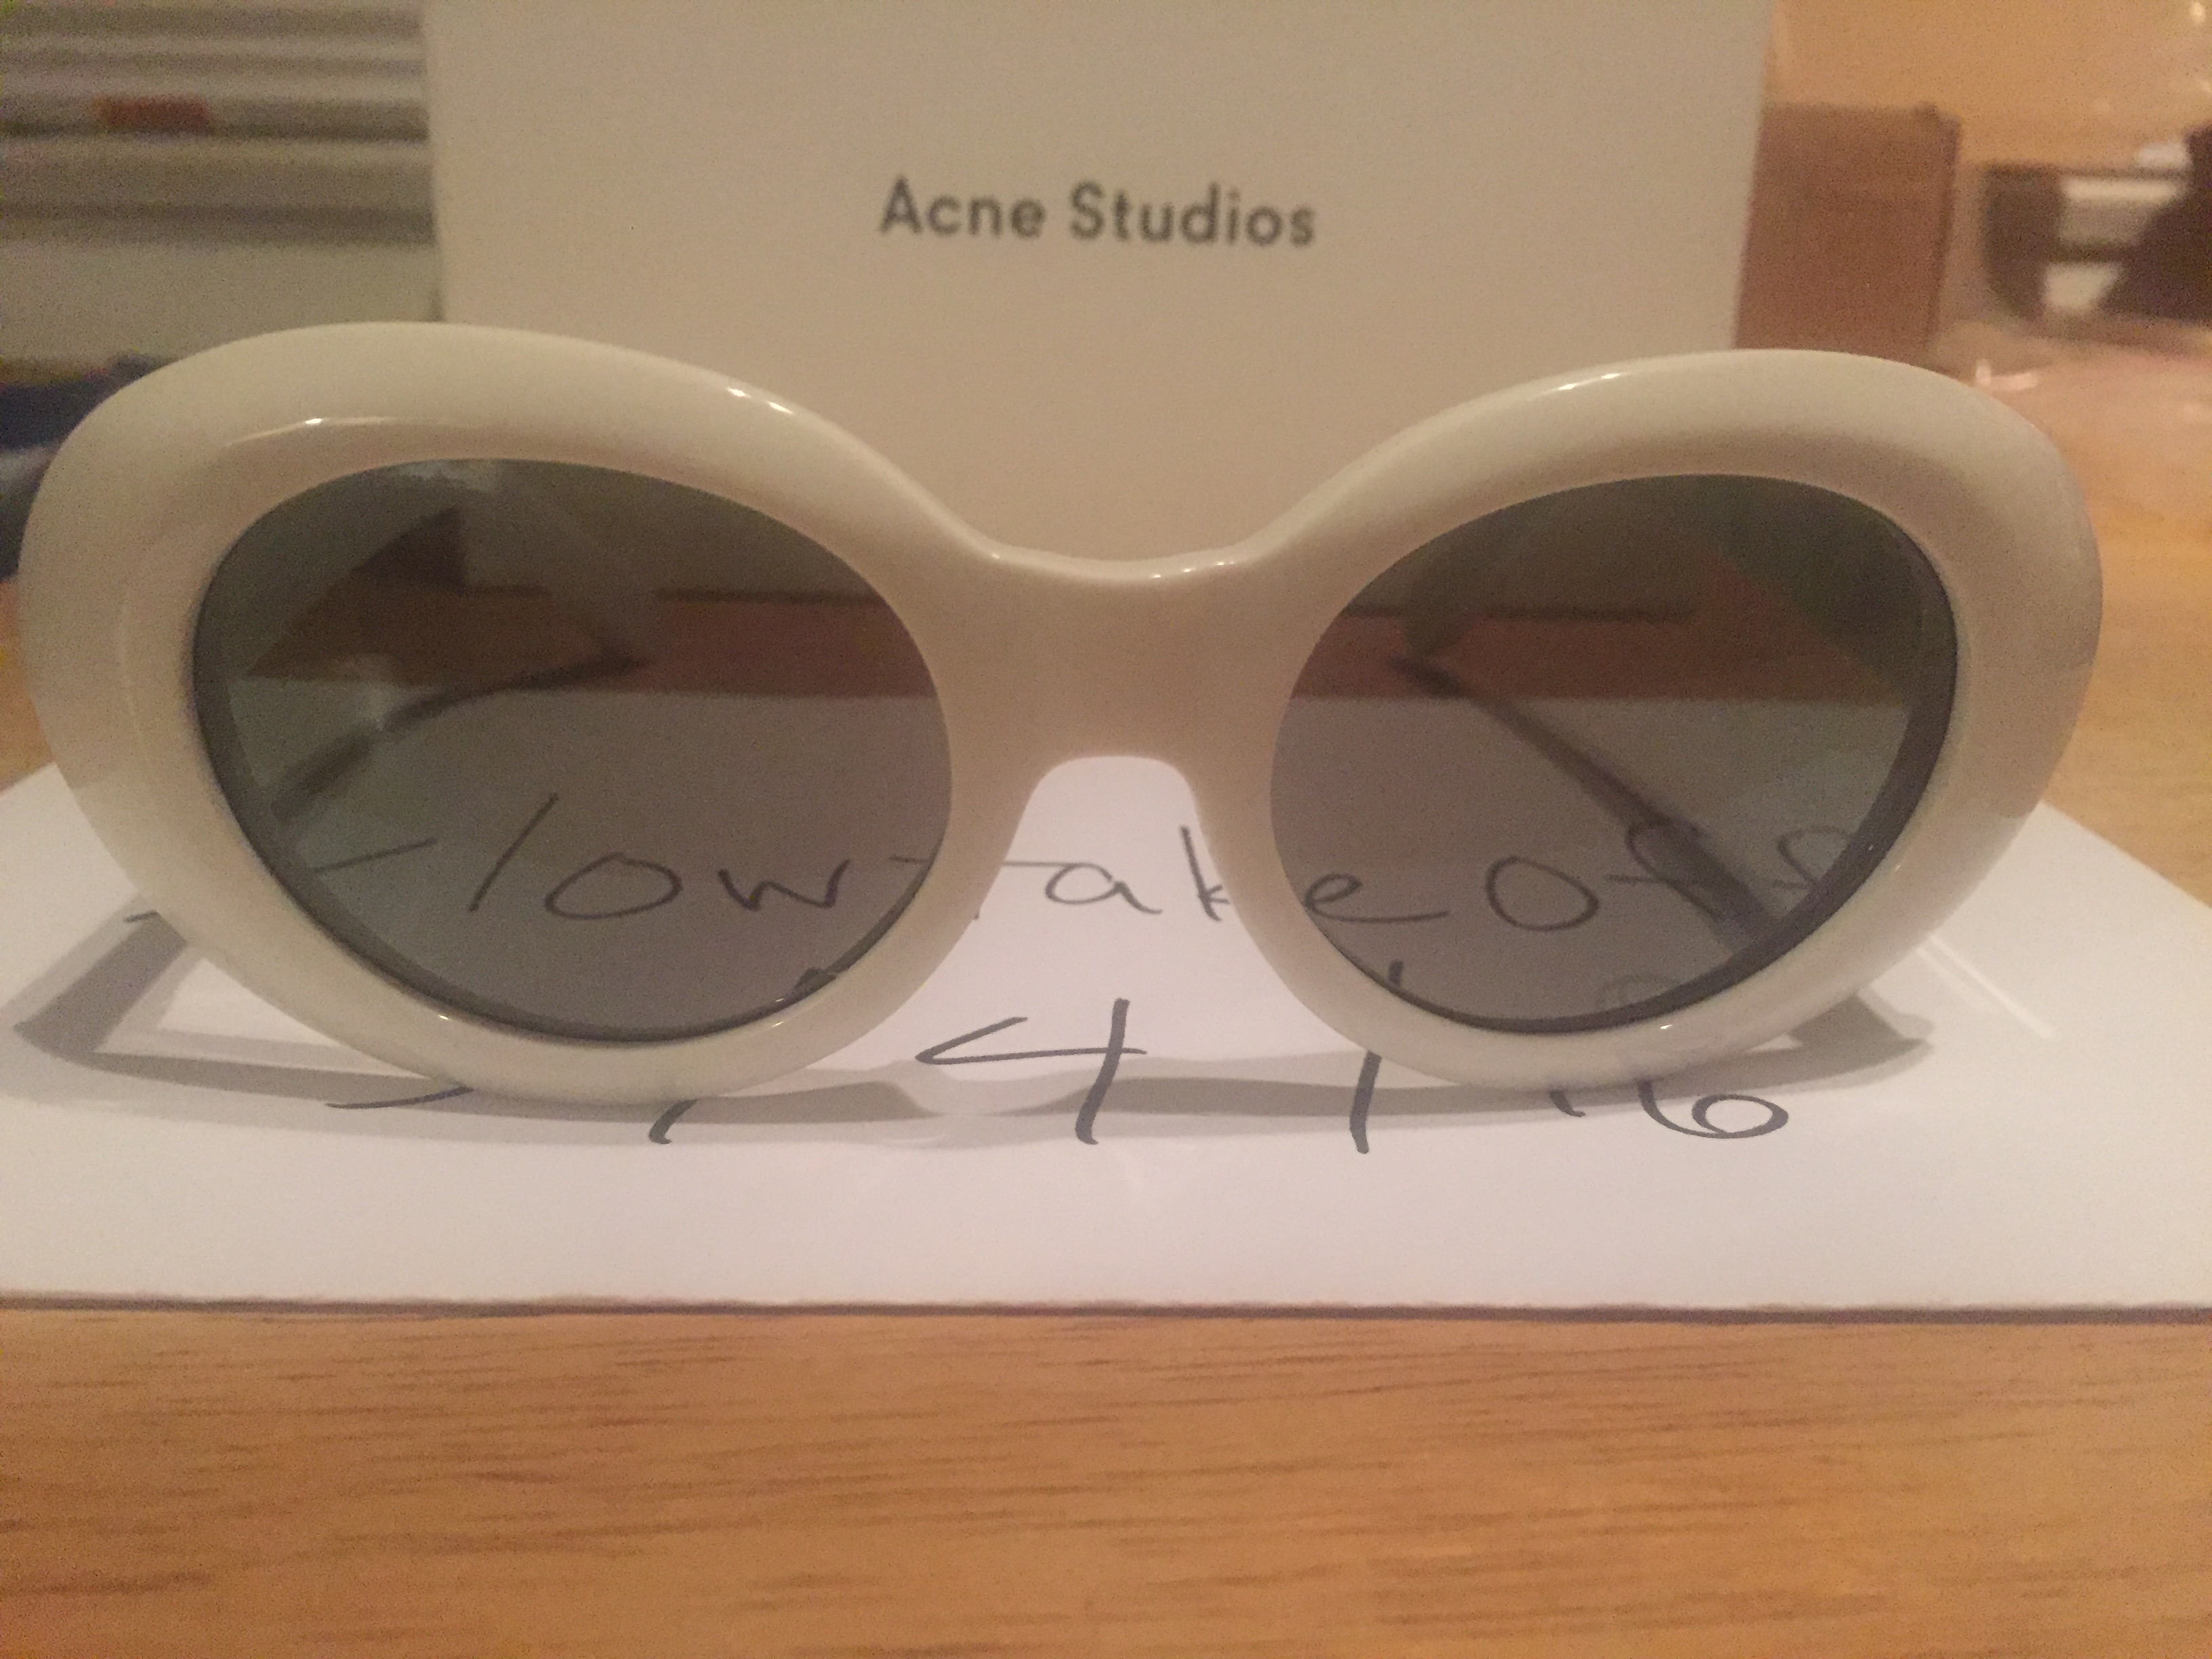 fdfb68fc0011b Acne Studios Off White Mustang Sunglasses